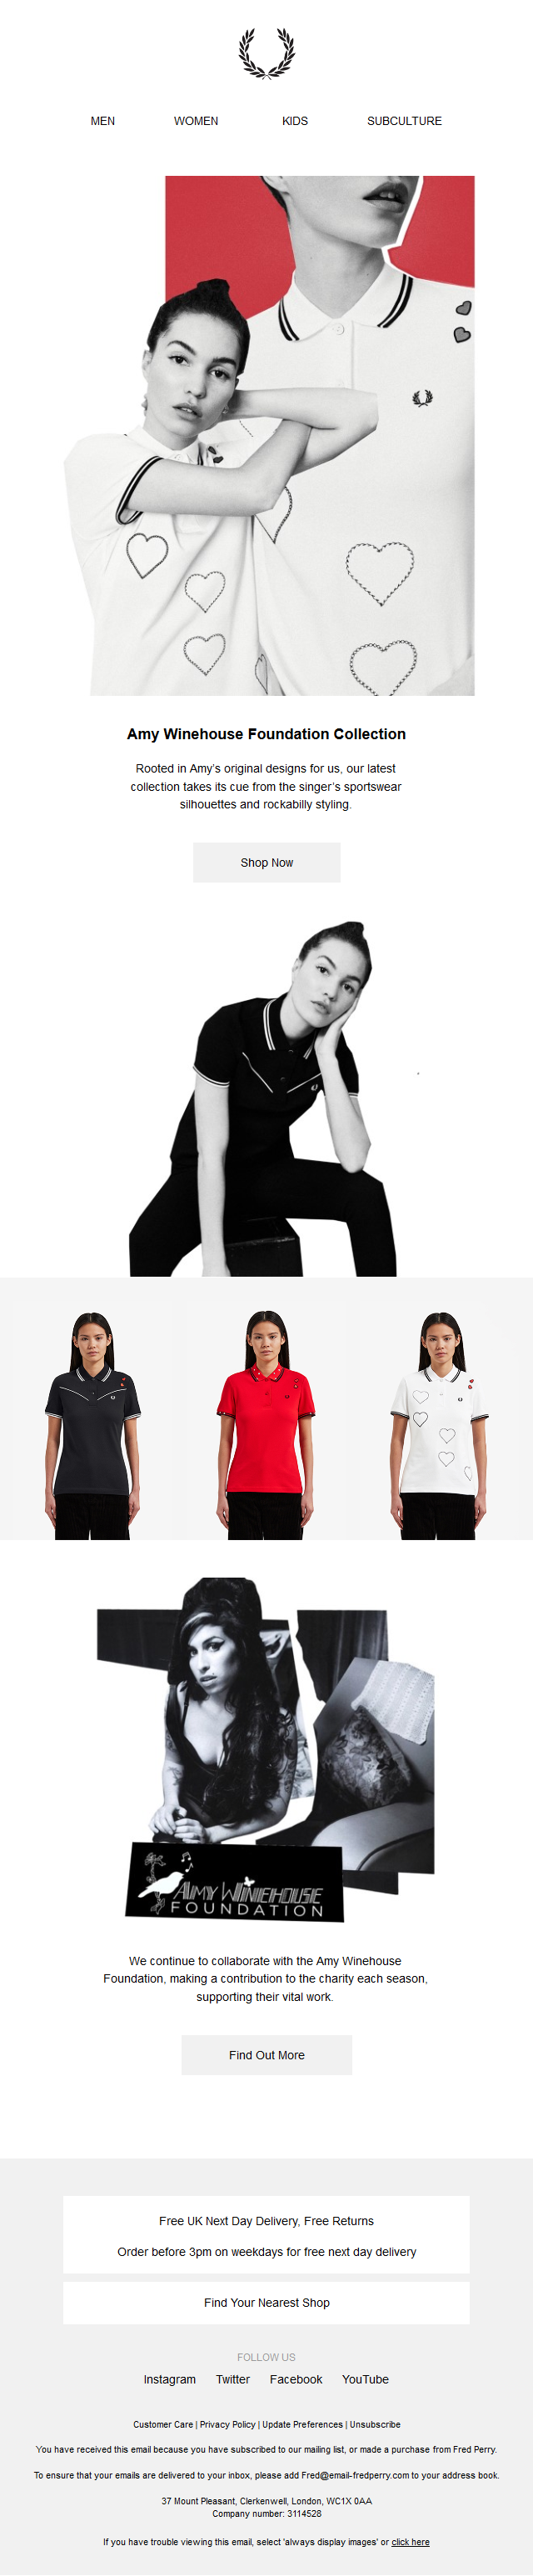 Fred Perry x Amy Winehouse Foundation Collection